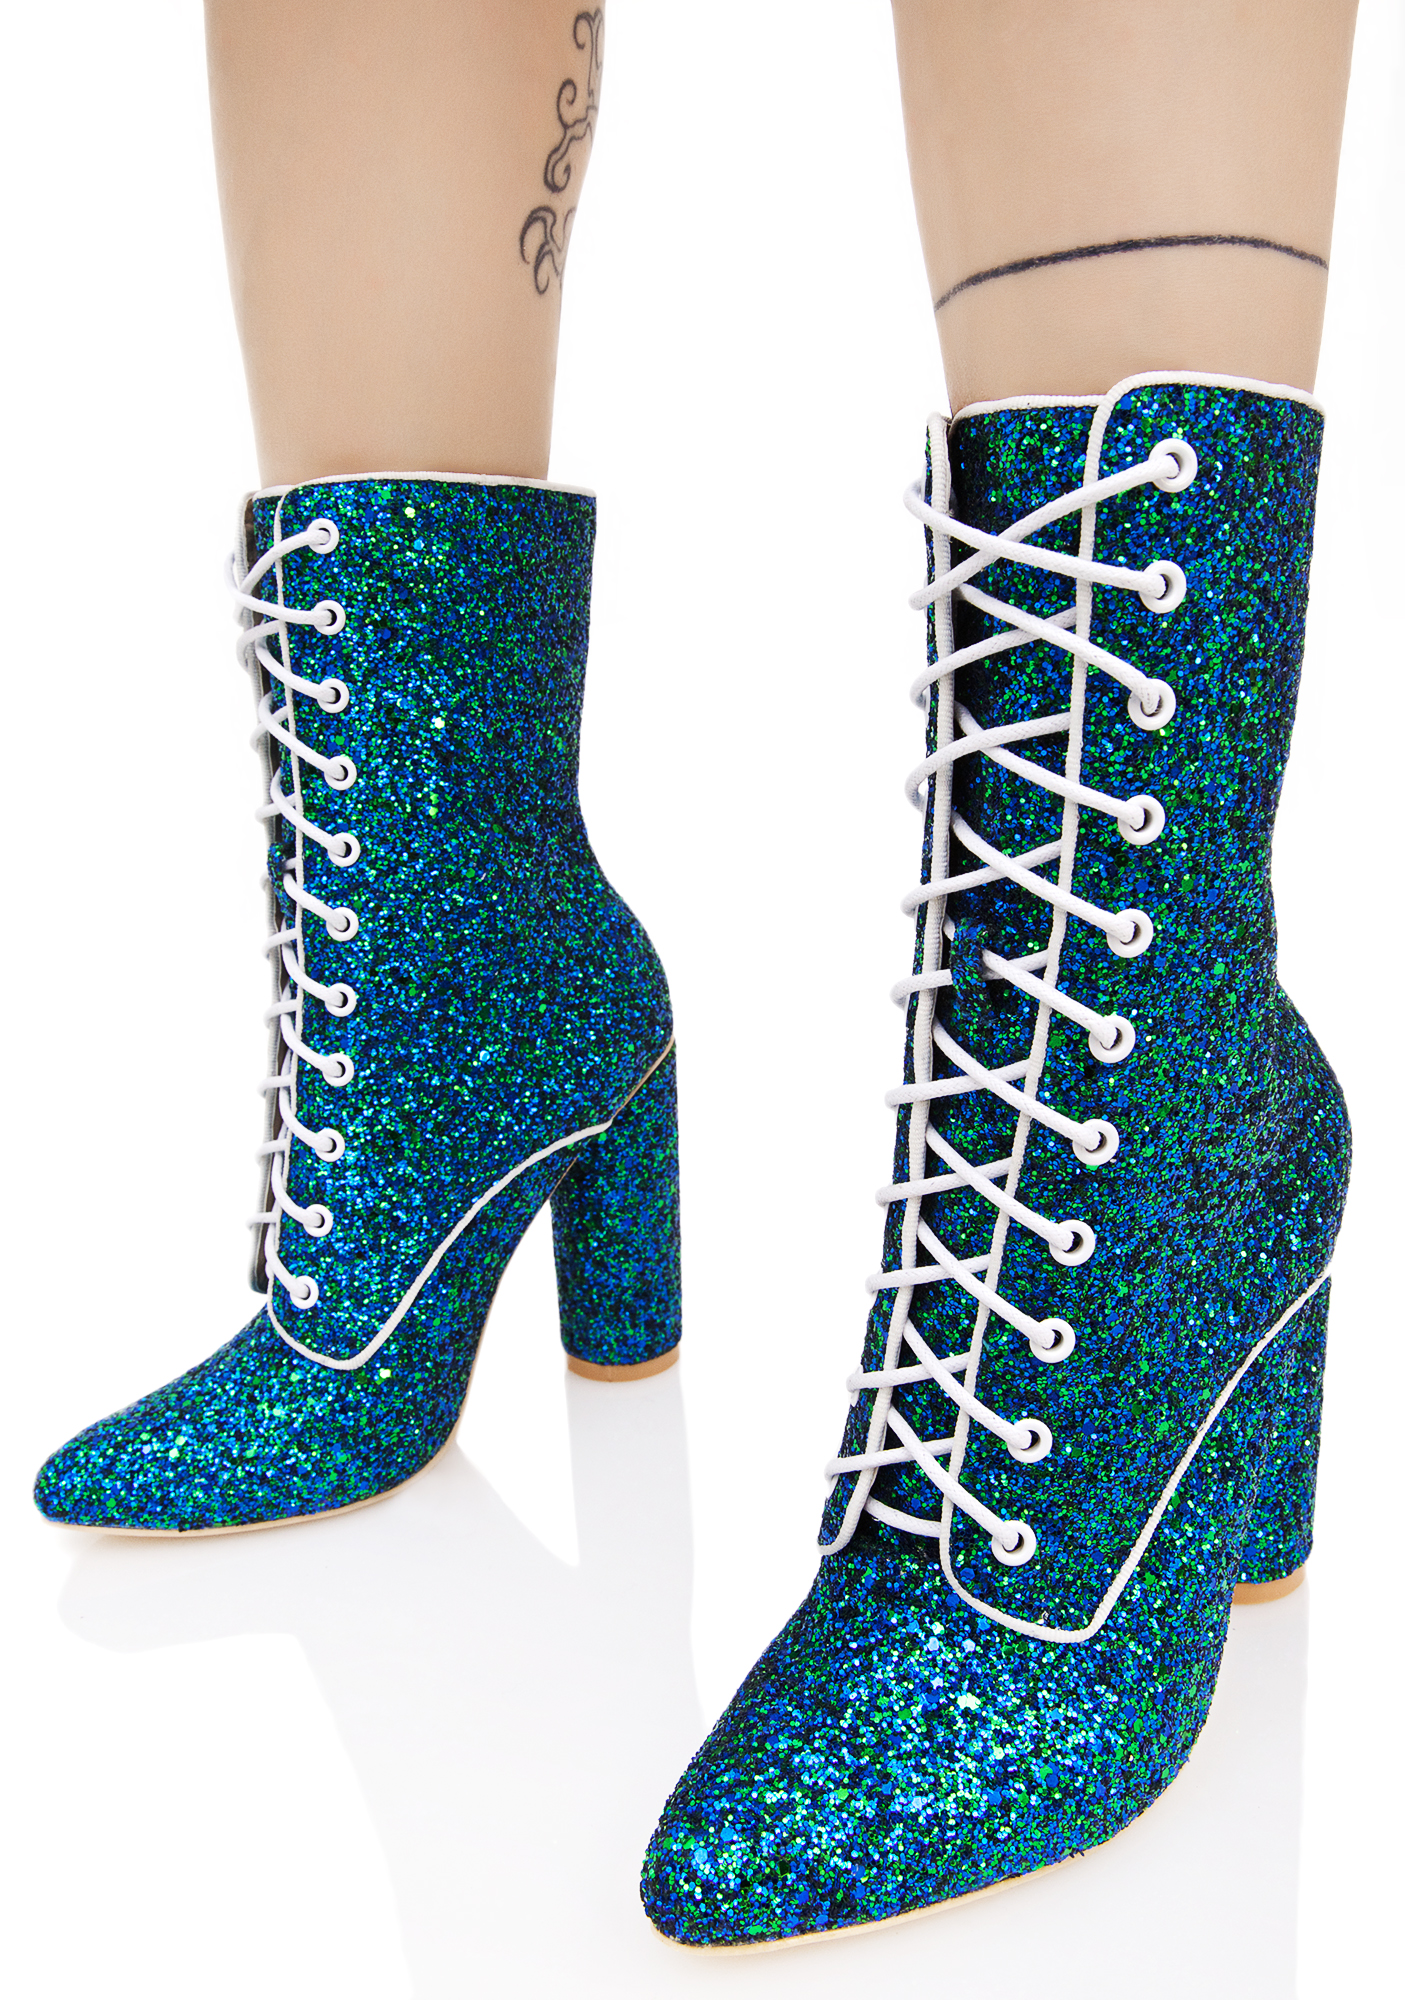 Blue Lace Up Glitter Heeled Boots